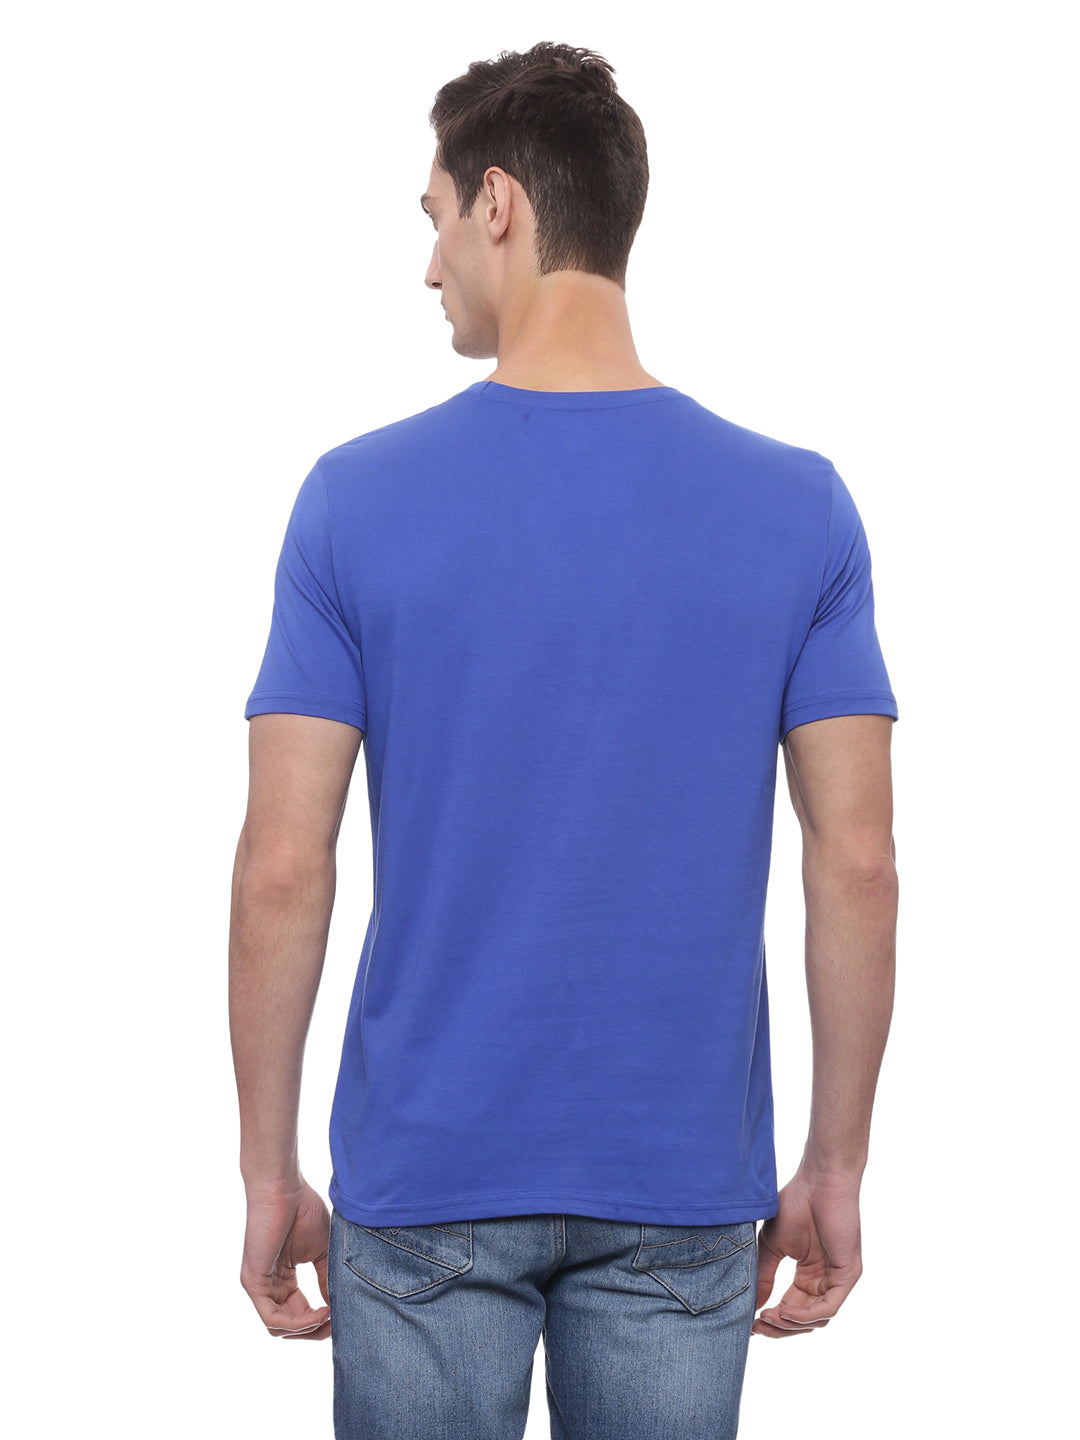 The Crew Tee - Royal Blue